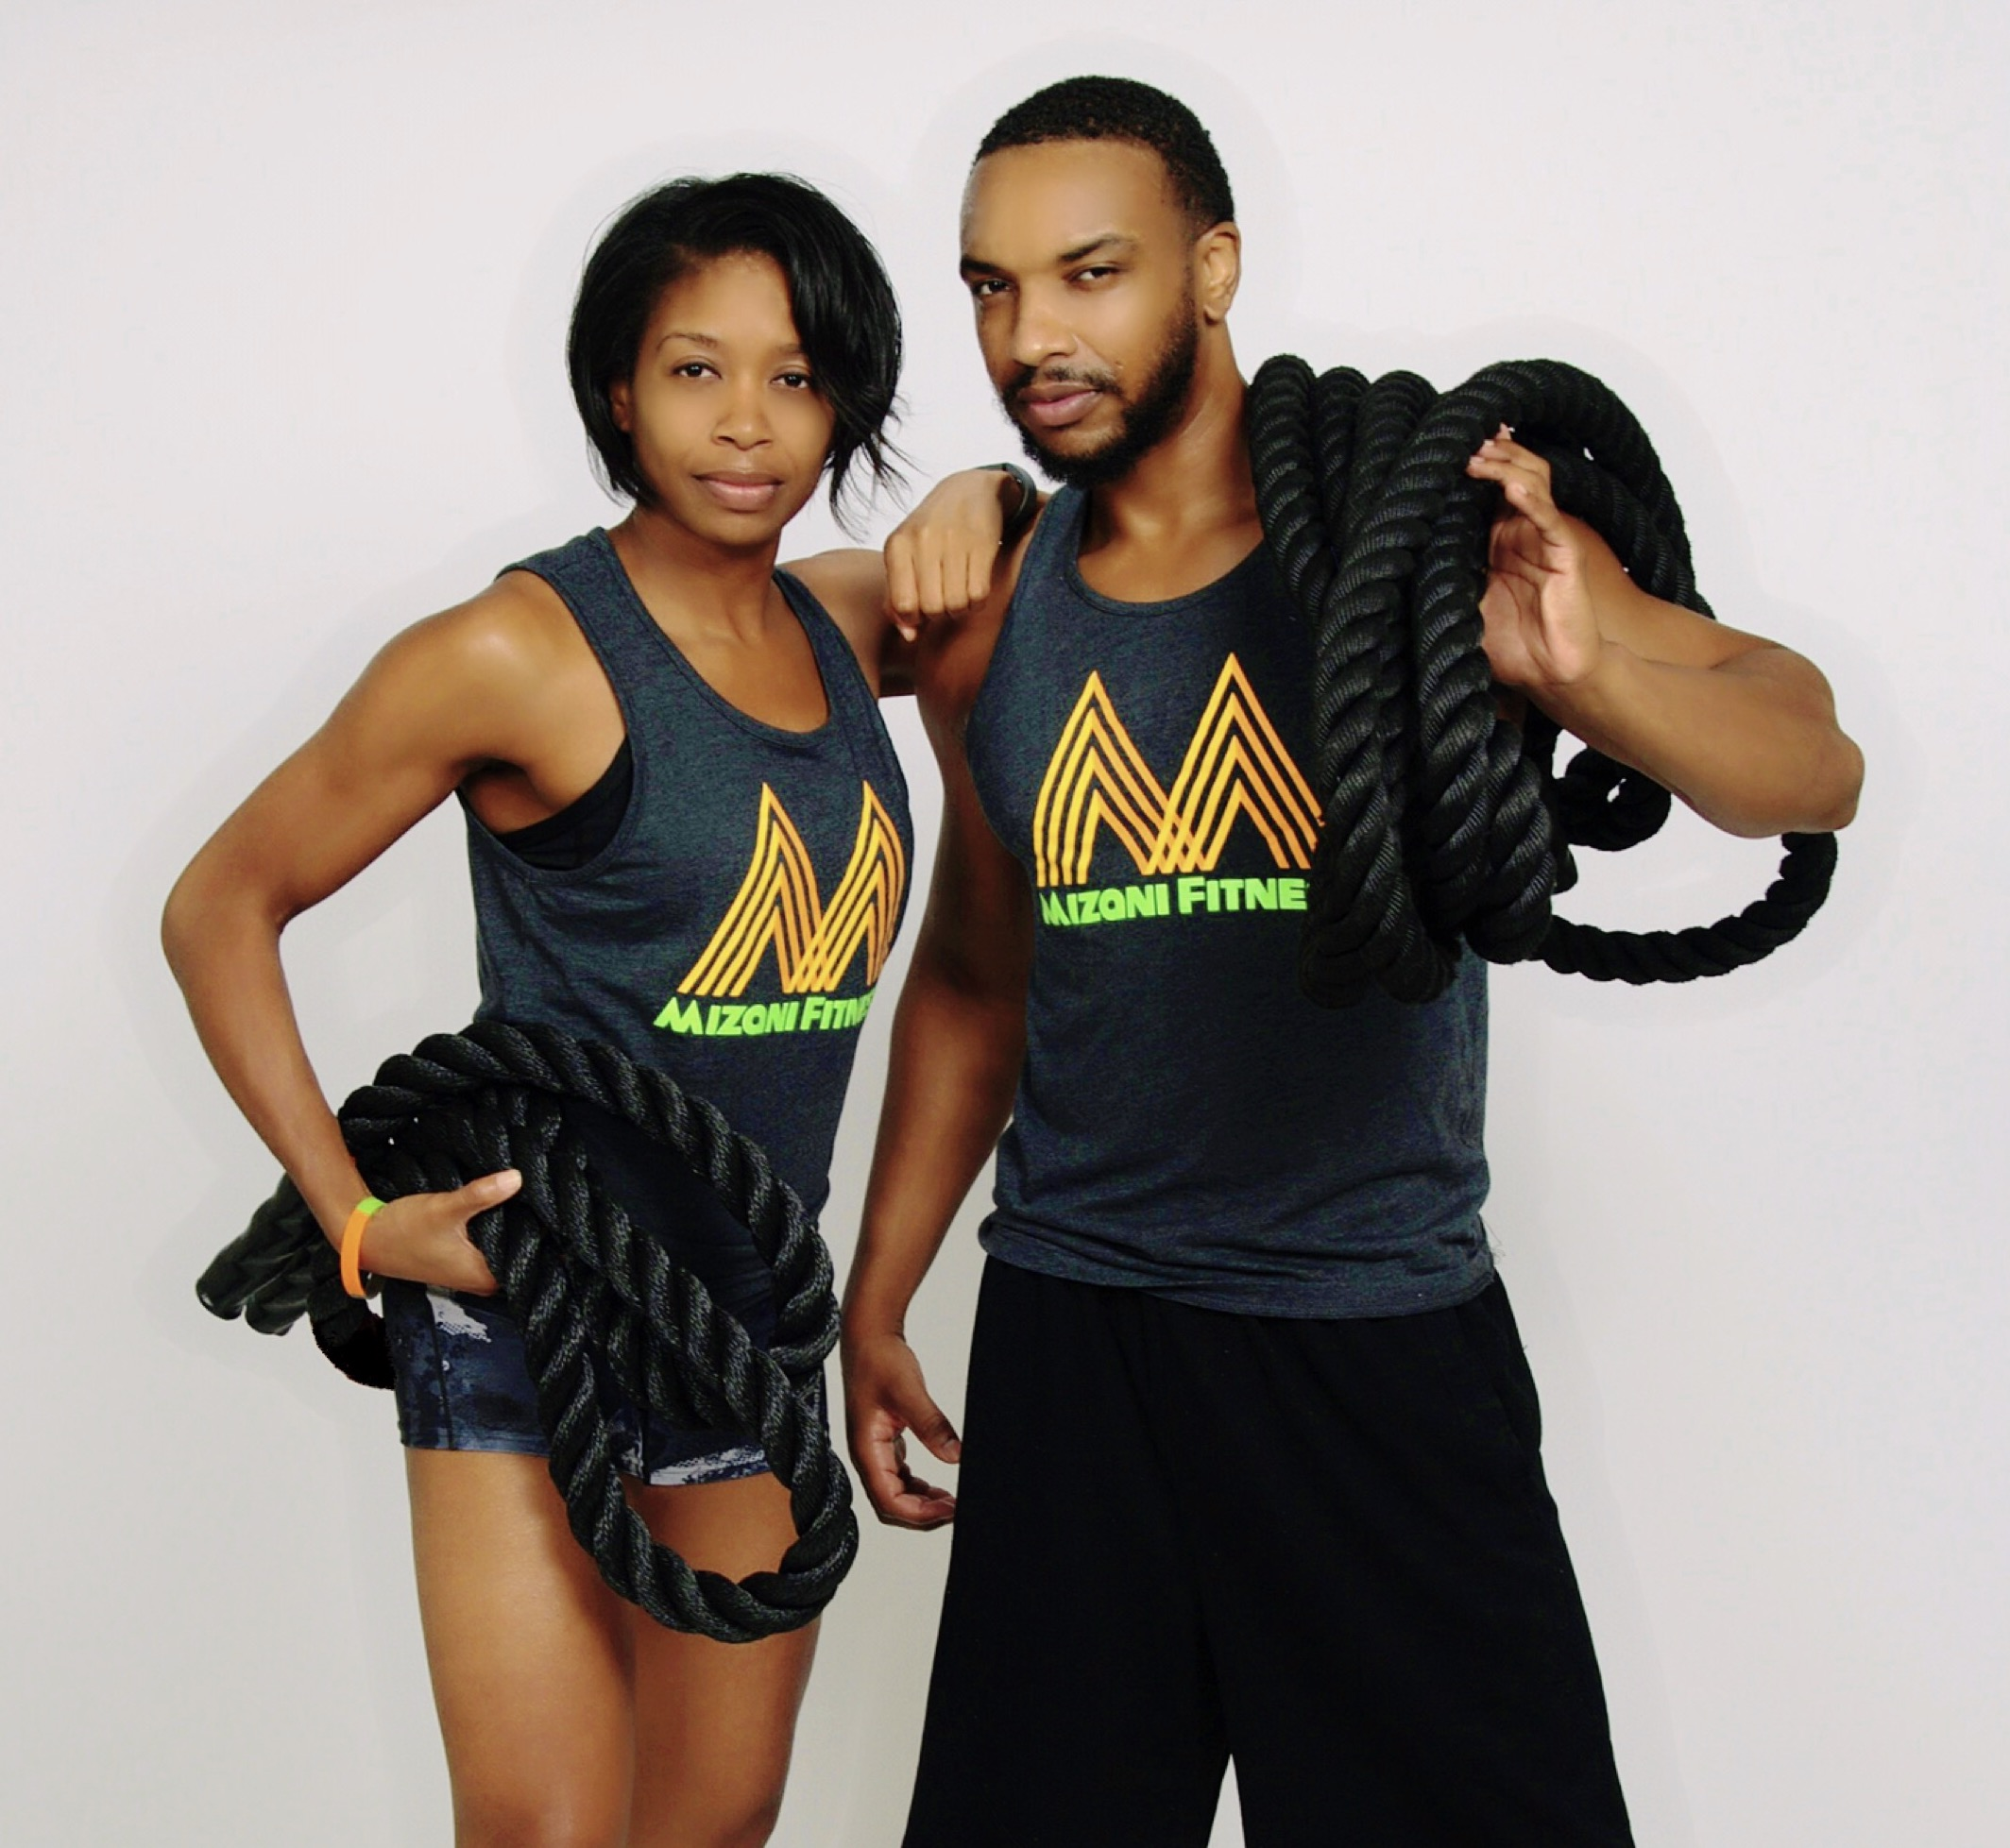 Mizani Fitness Private Fitness Sessions